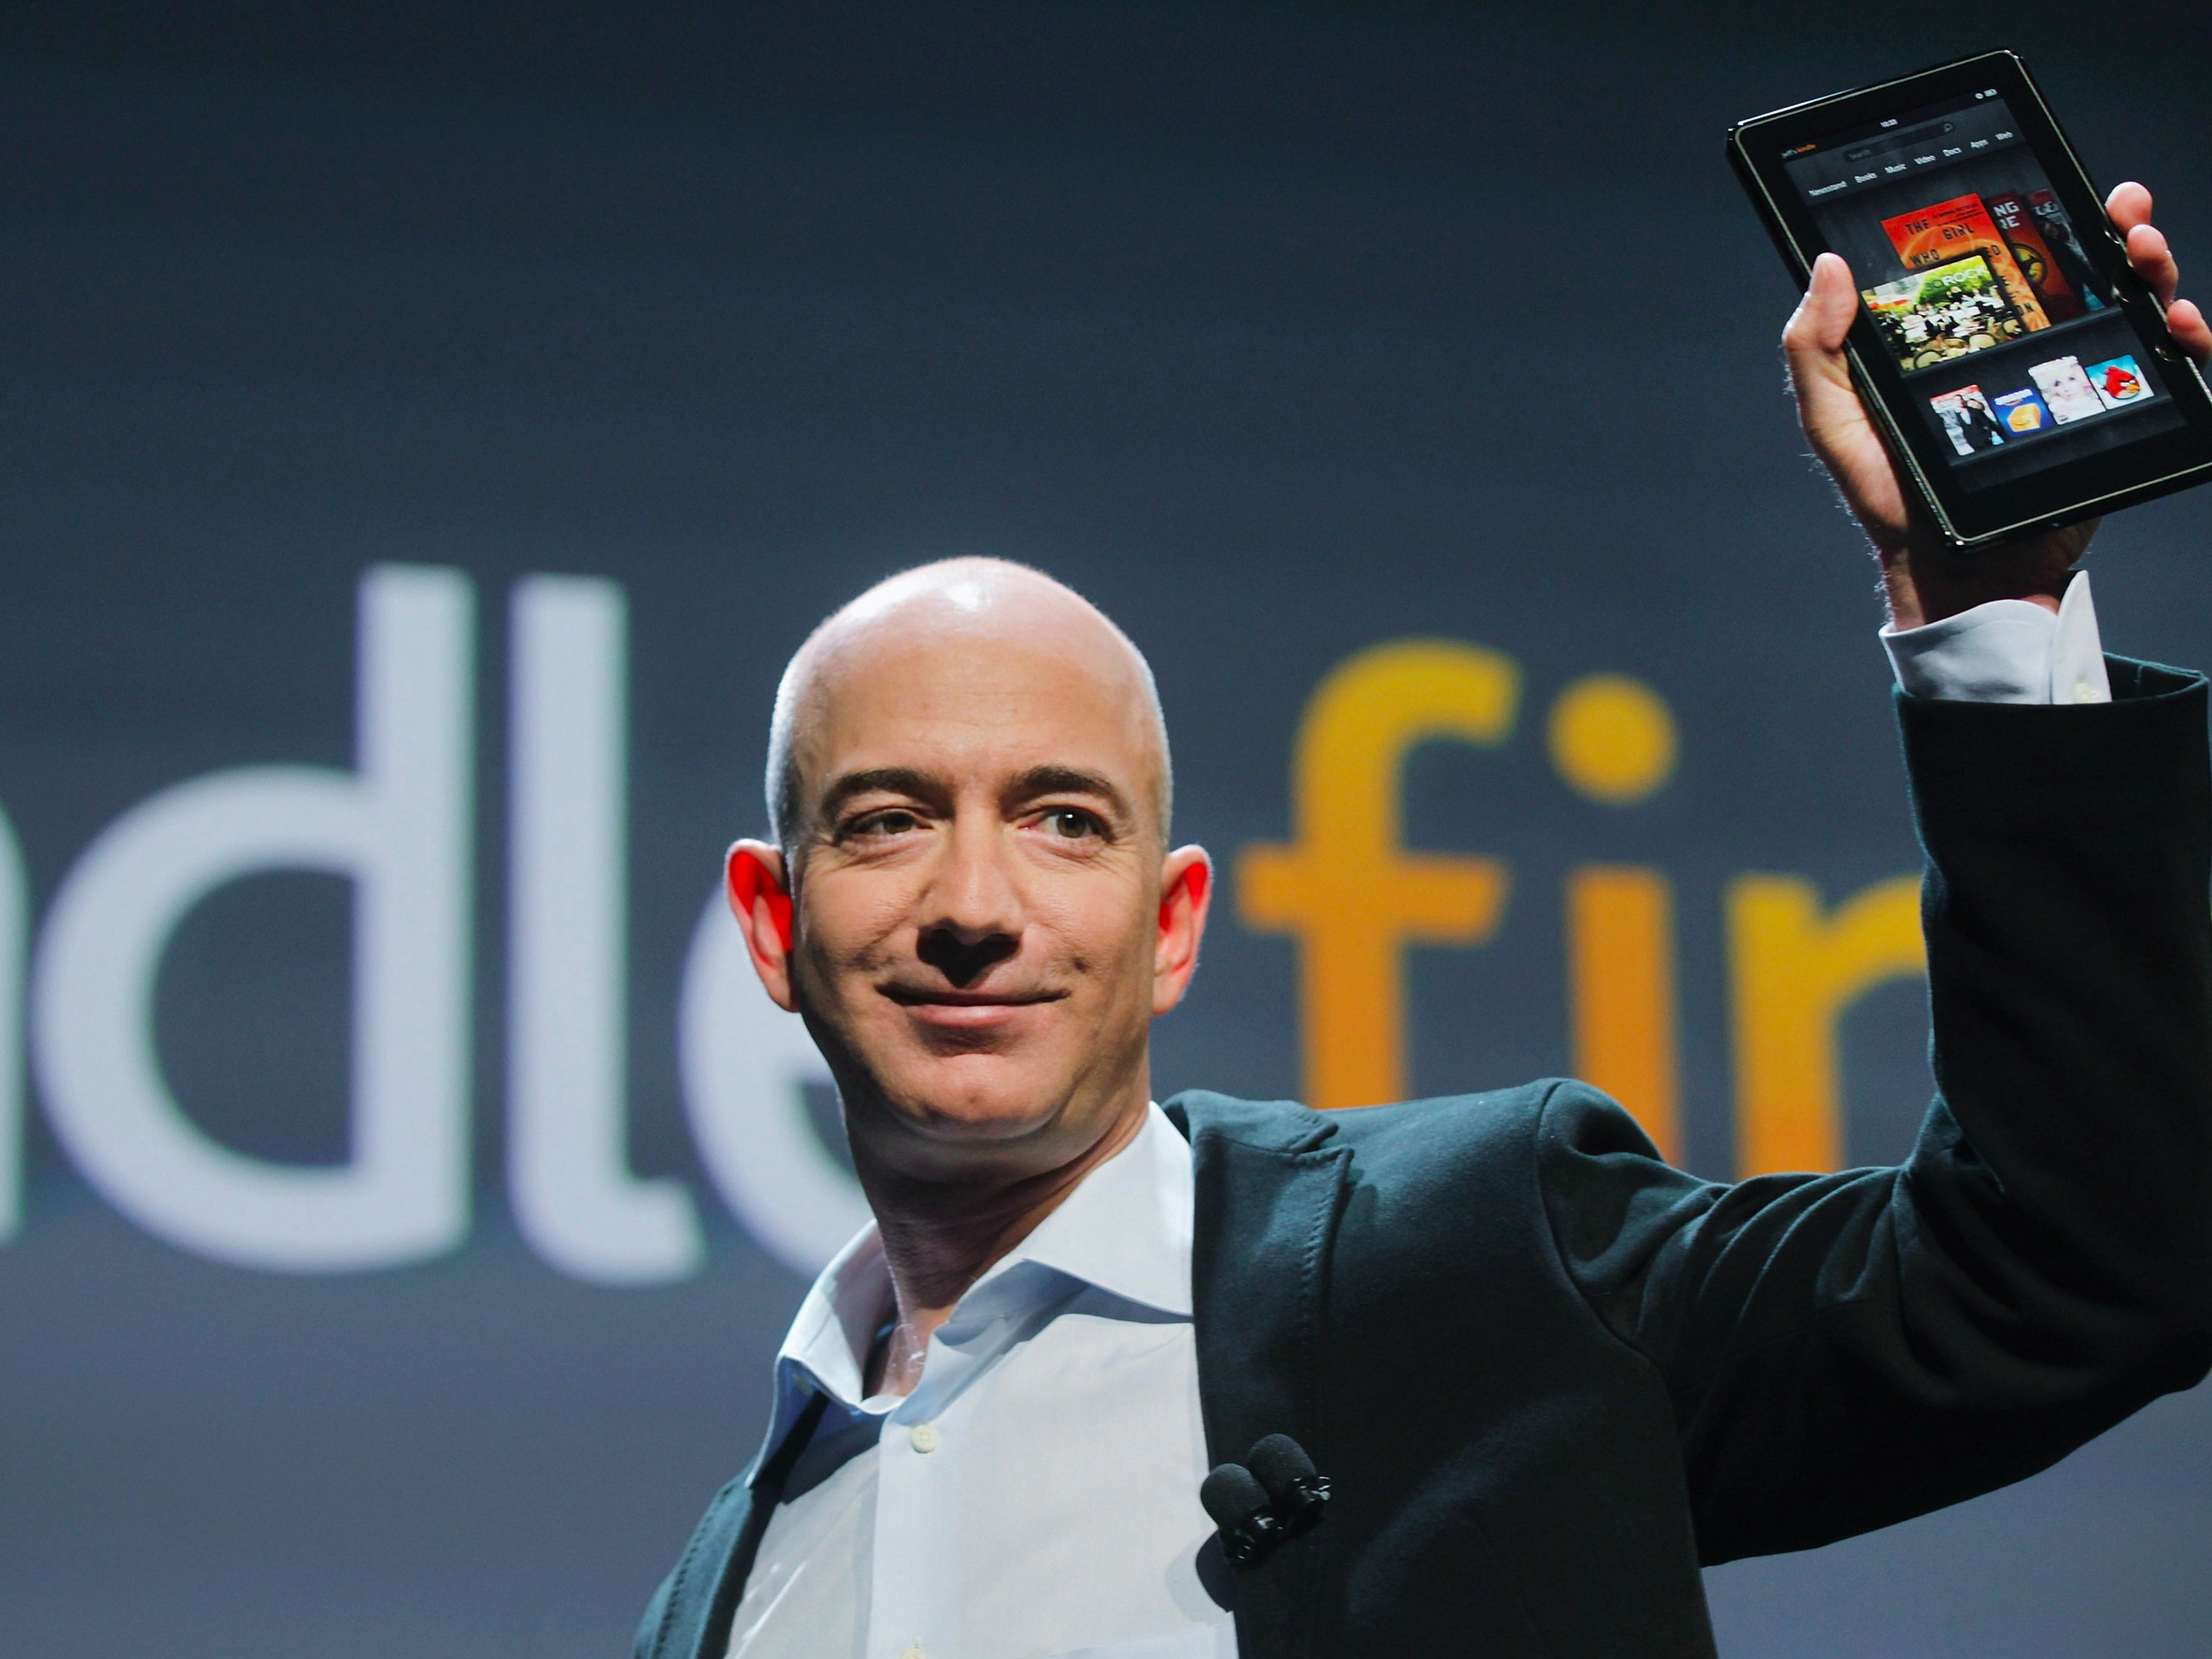 These numbers explain why Amazon wants to give so much free stuff to Prime members